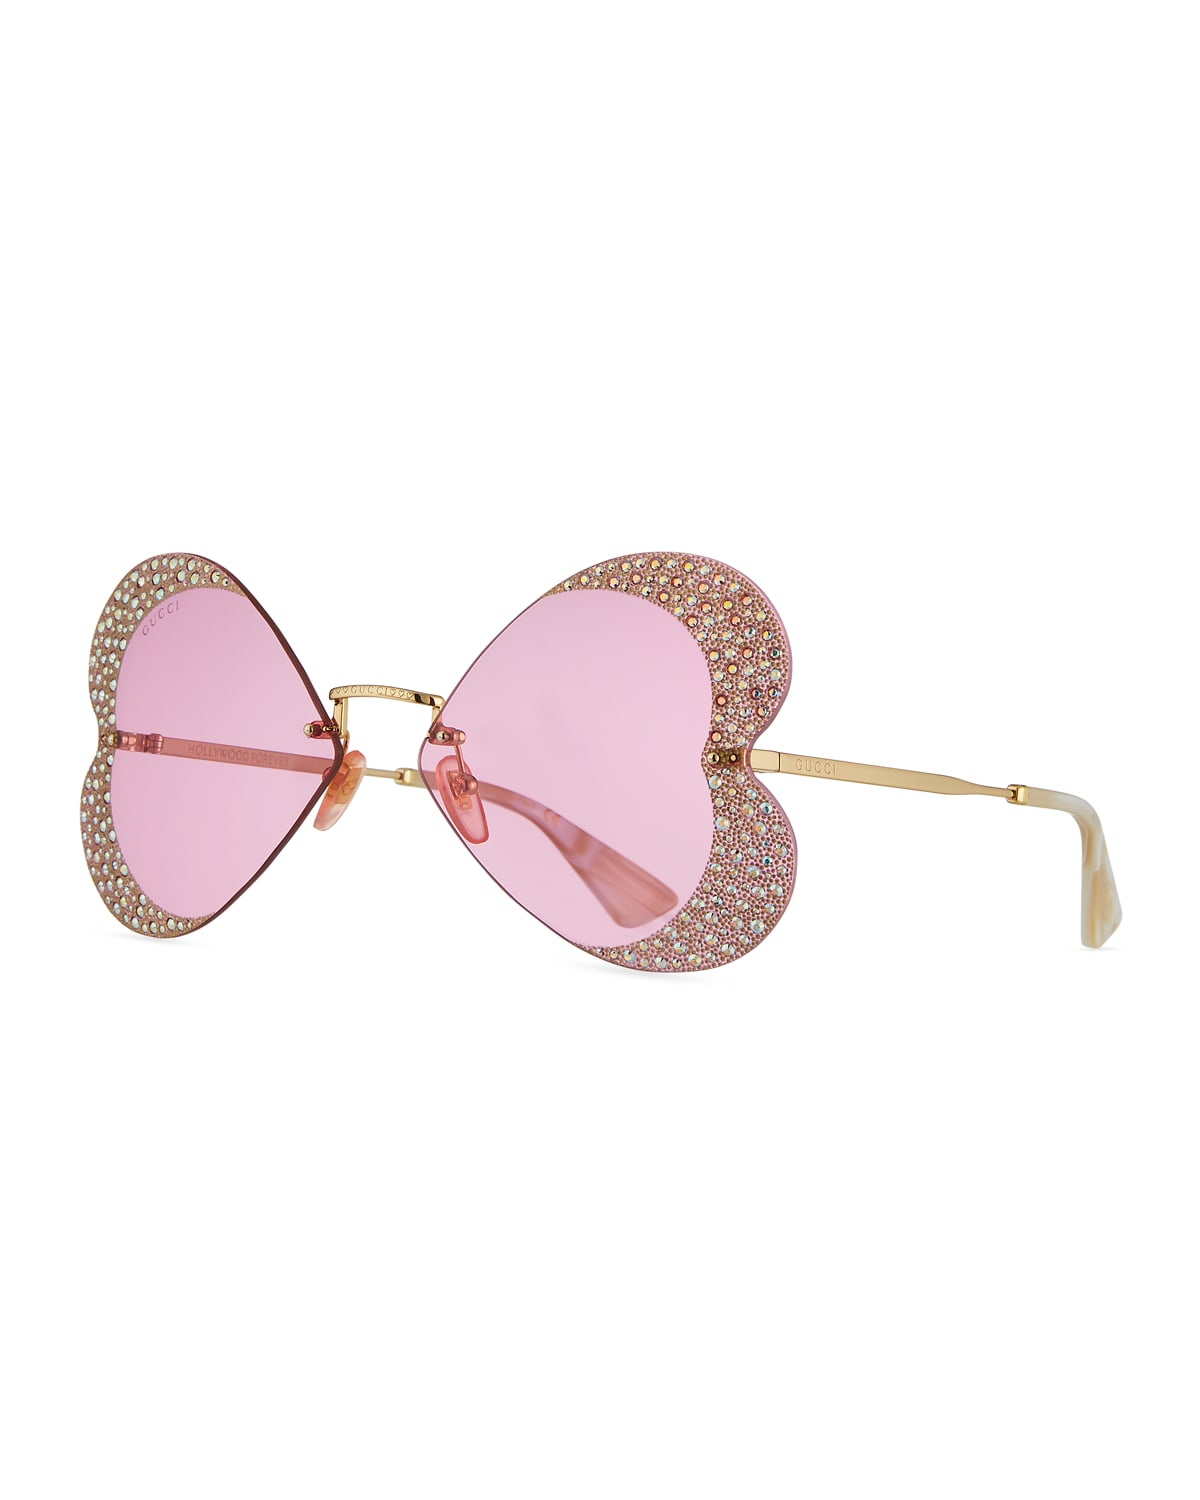 Hollywood Forever Rimless Metal Heart Sunglasses with Crystals